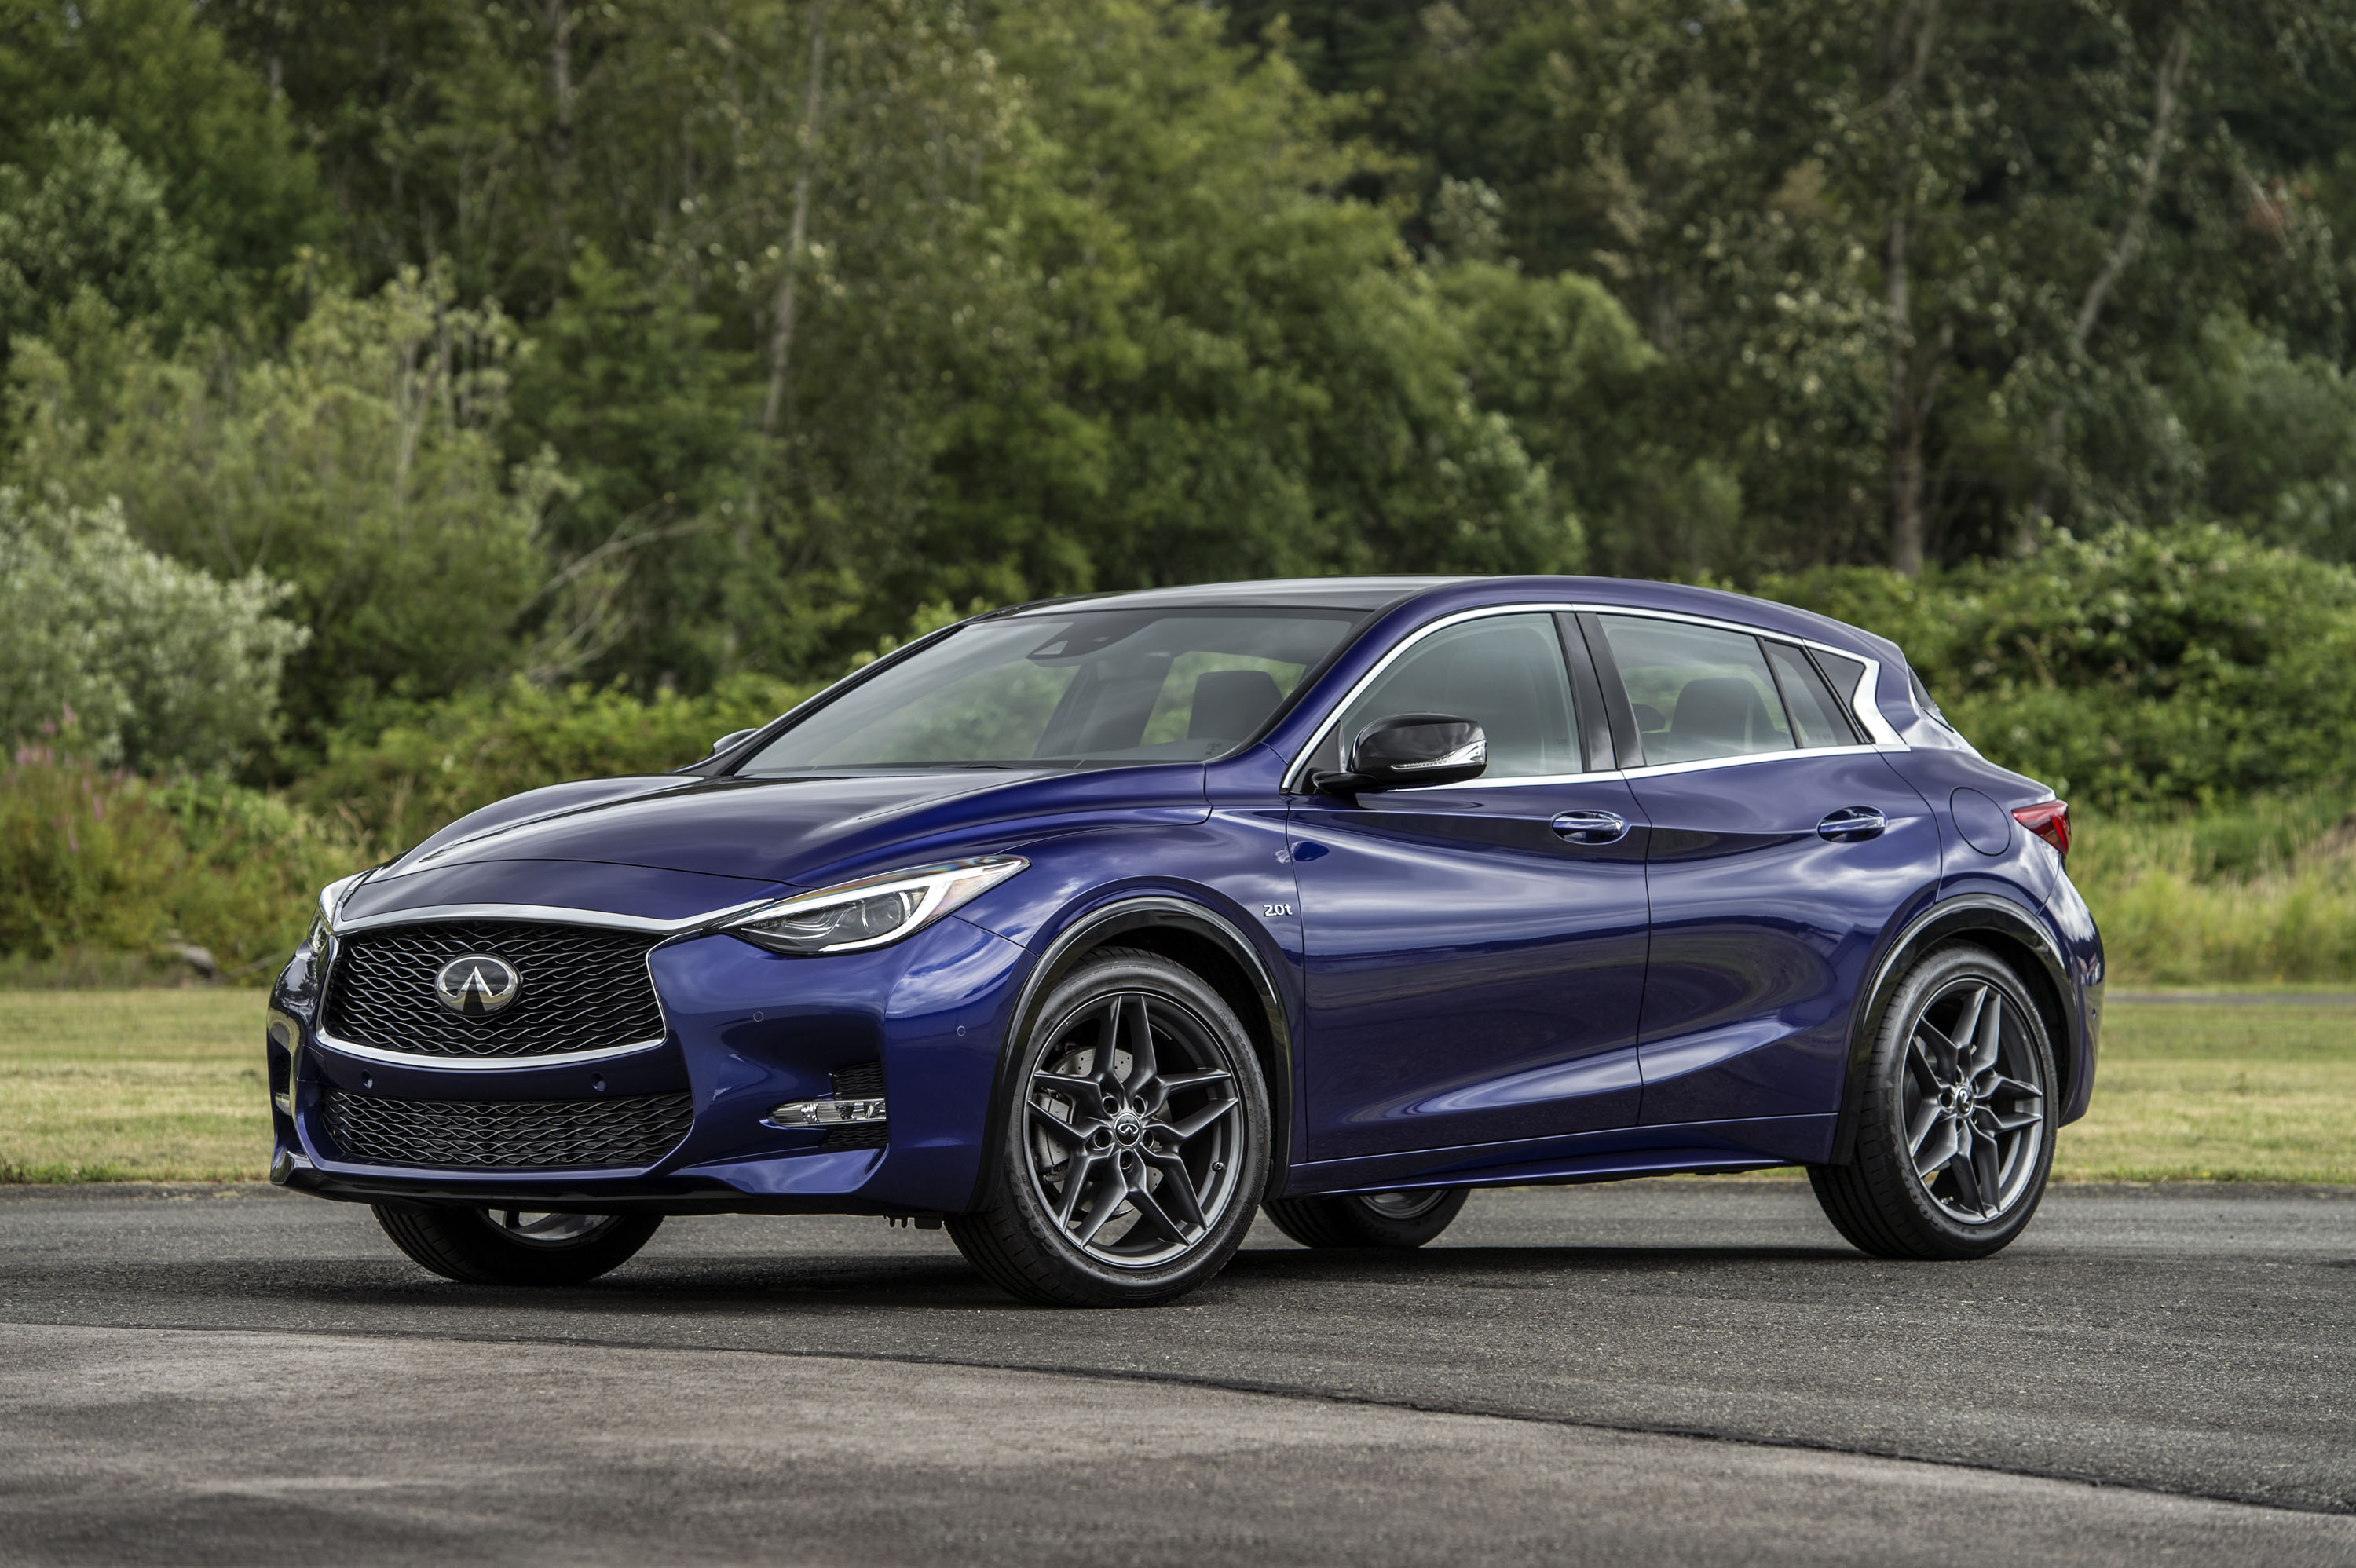 Updated 2018 Infiniti QX30 adds safety tech reshuffles trim levels